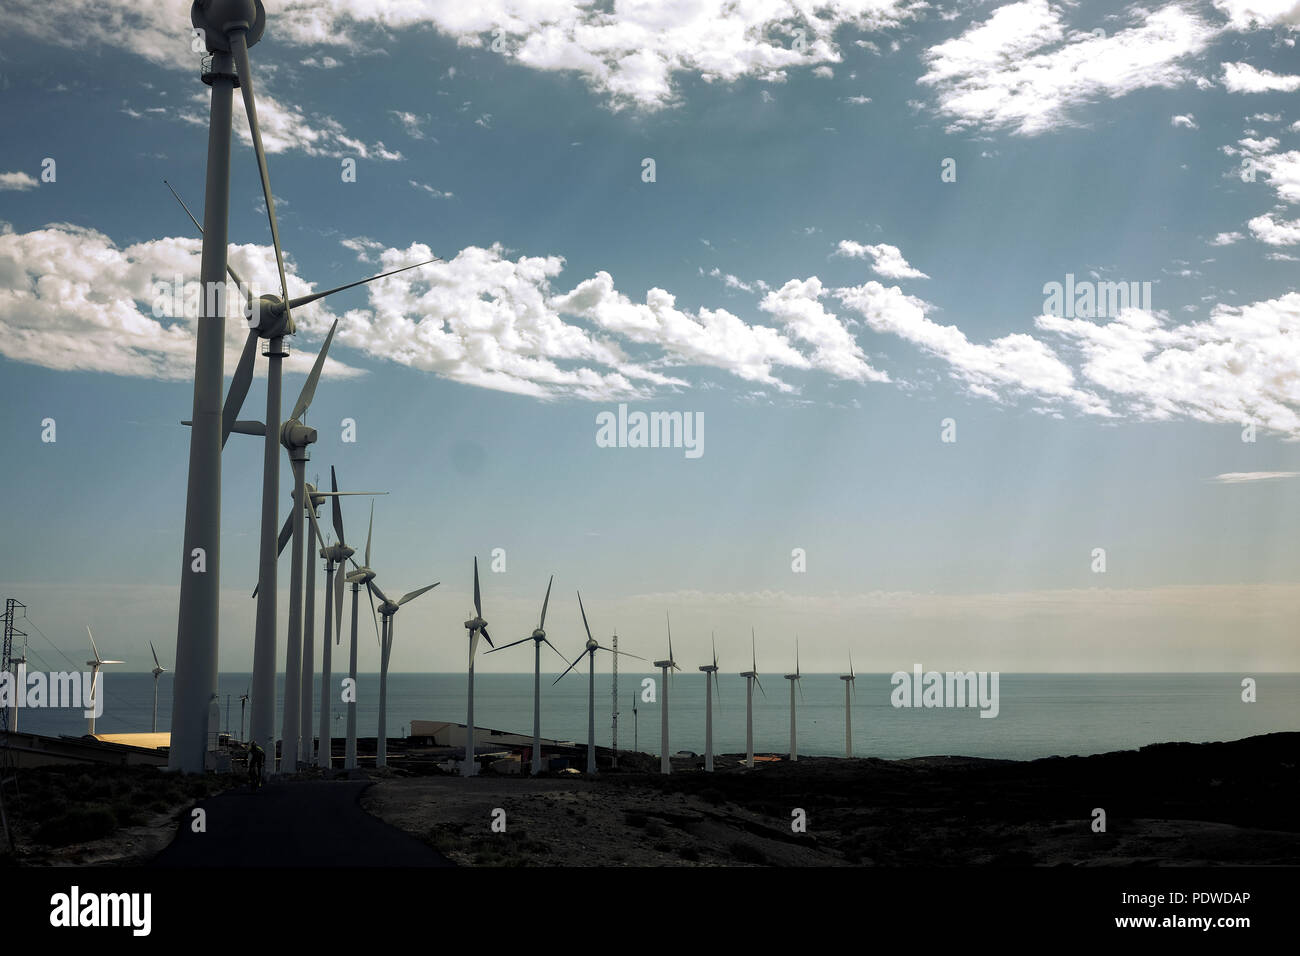 modern environment to produce energy and electricityu with clean